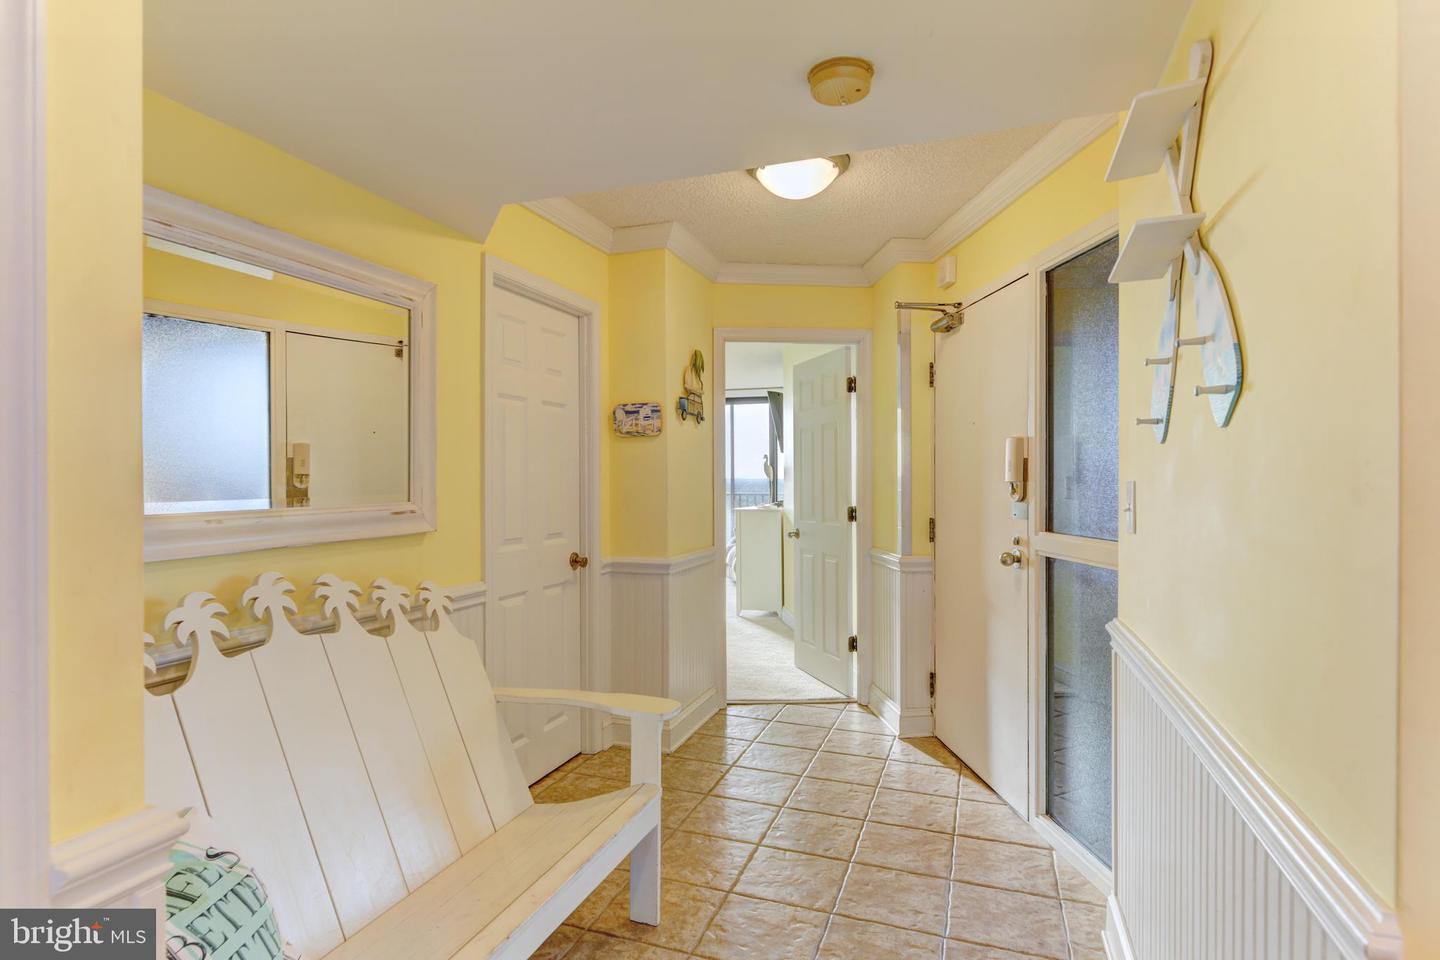 DESU152792-302186530636-2019-12-16-14-23-17 1206 S Edgewater House Rd #1206s | Bethany Beach, De Real Estate For Sale | MLS# Desu152792  - Suzanne Macnab